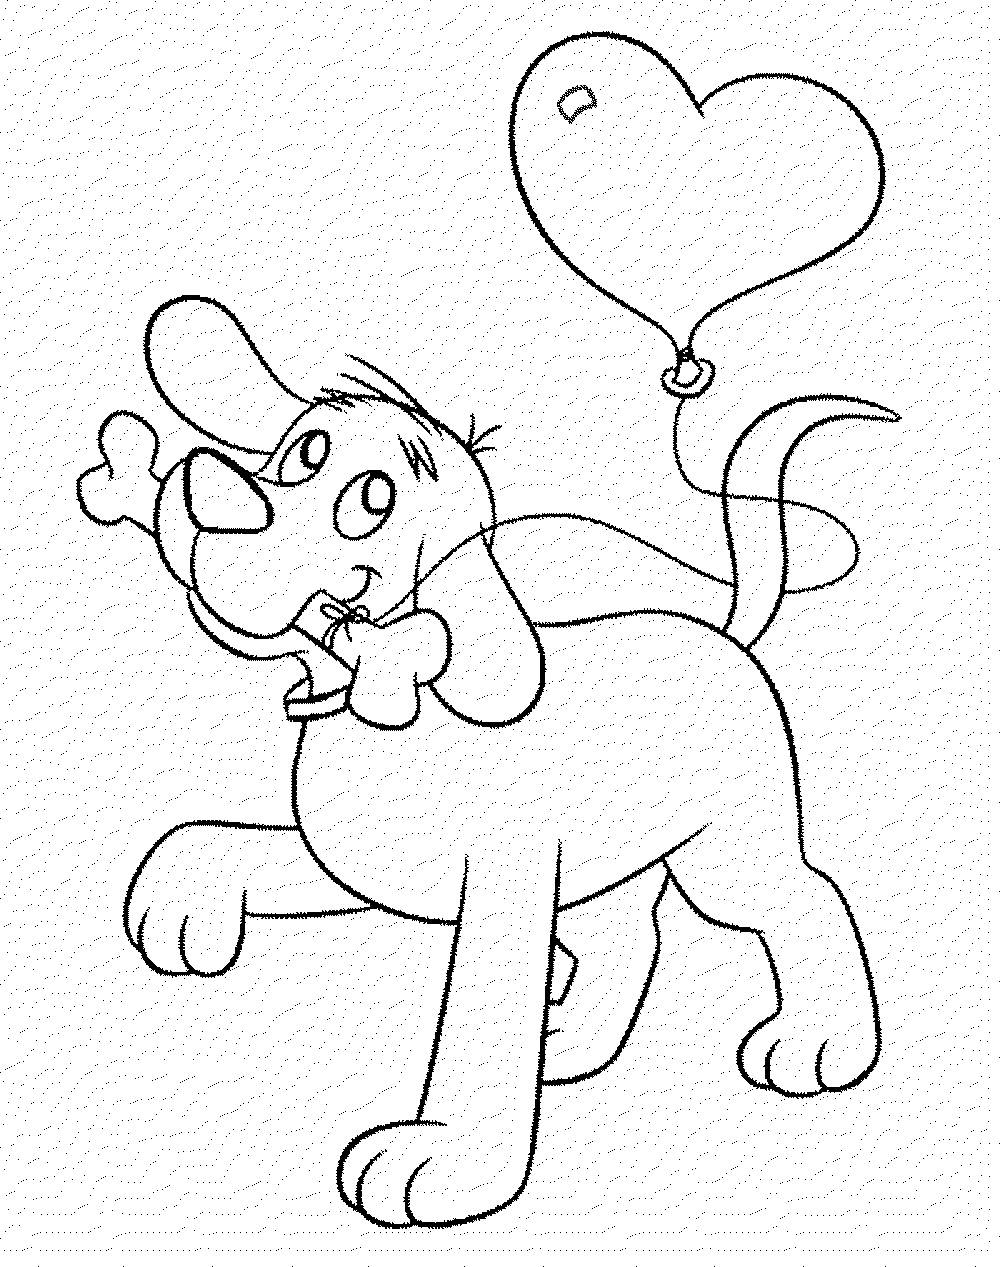 Employ Dog Coloring Pages For Your Children S Creative Time Dog Coloring Page Puppy Coloring Pages Coloring Pages